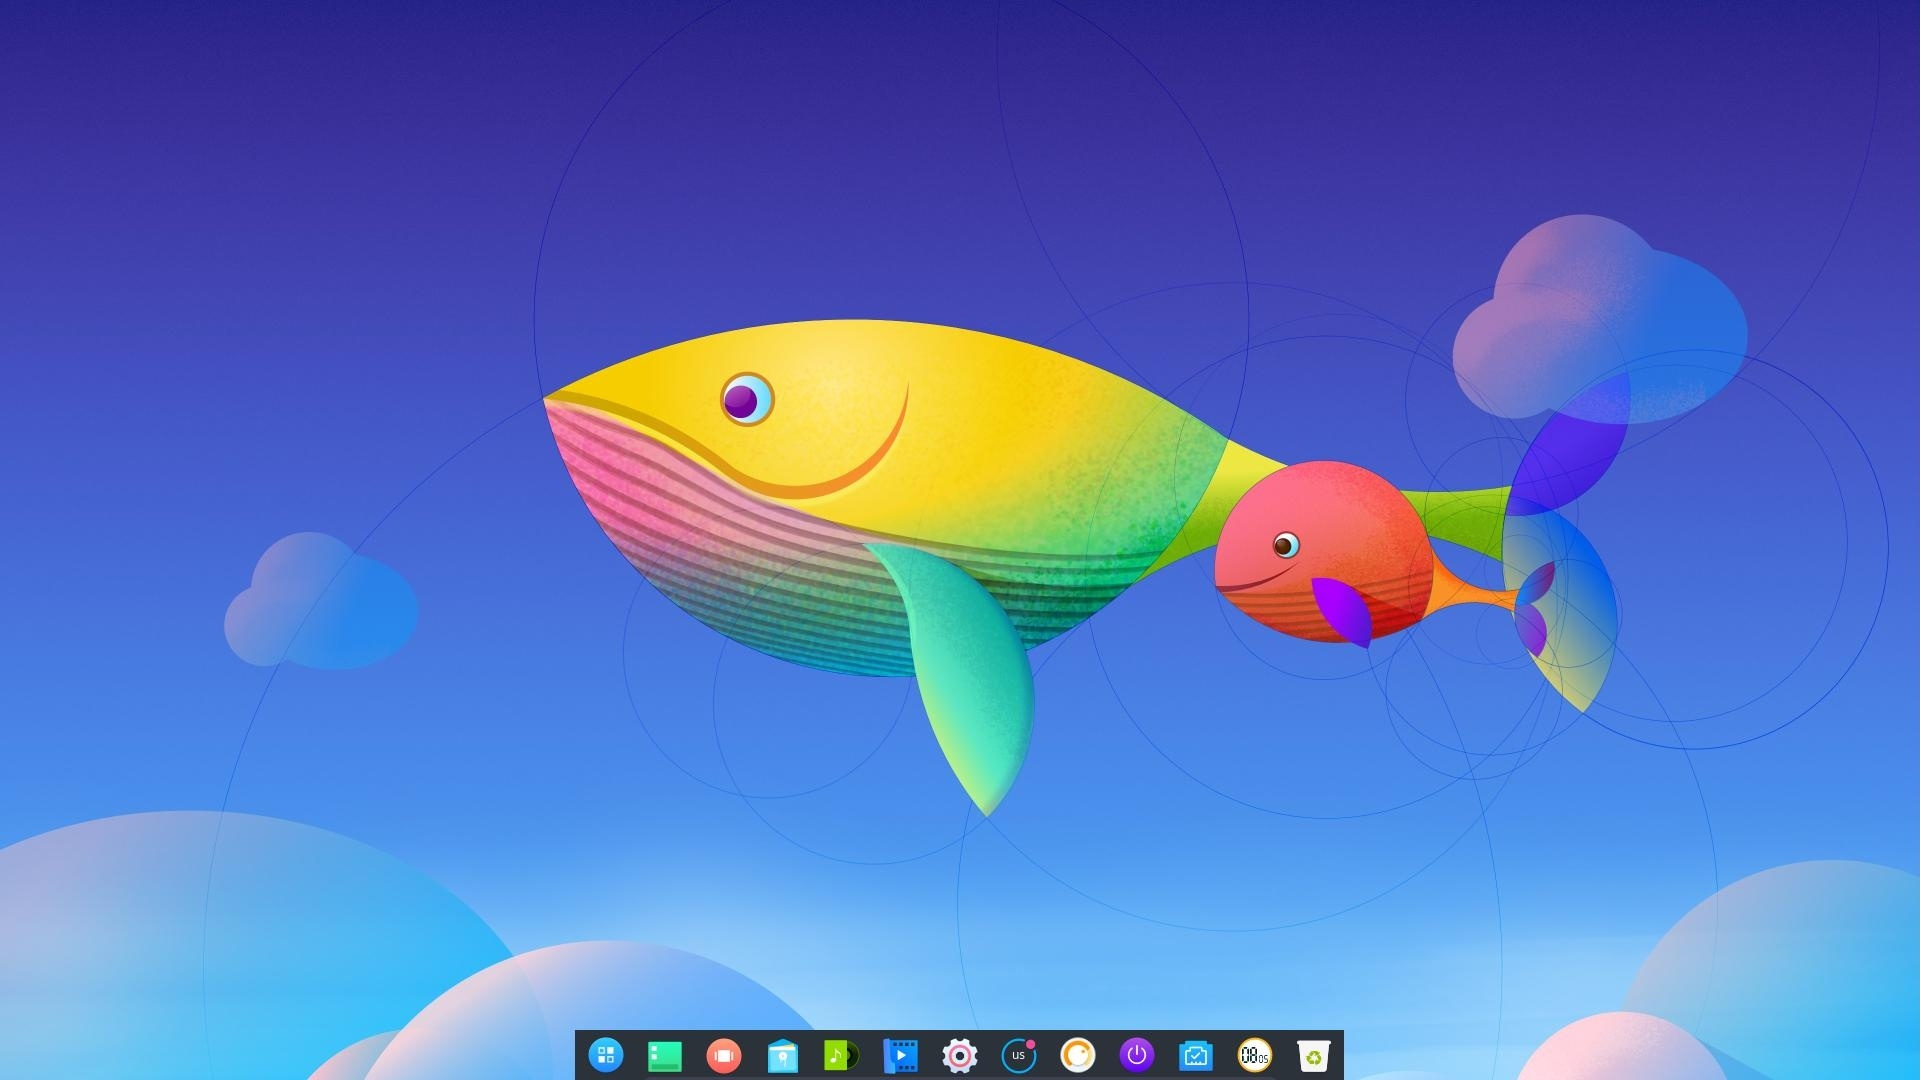 2 update your system after the installation of Deepin